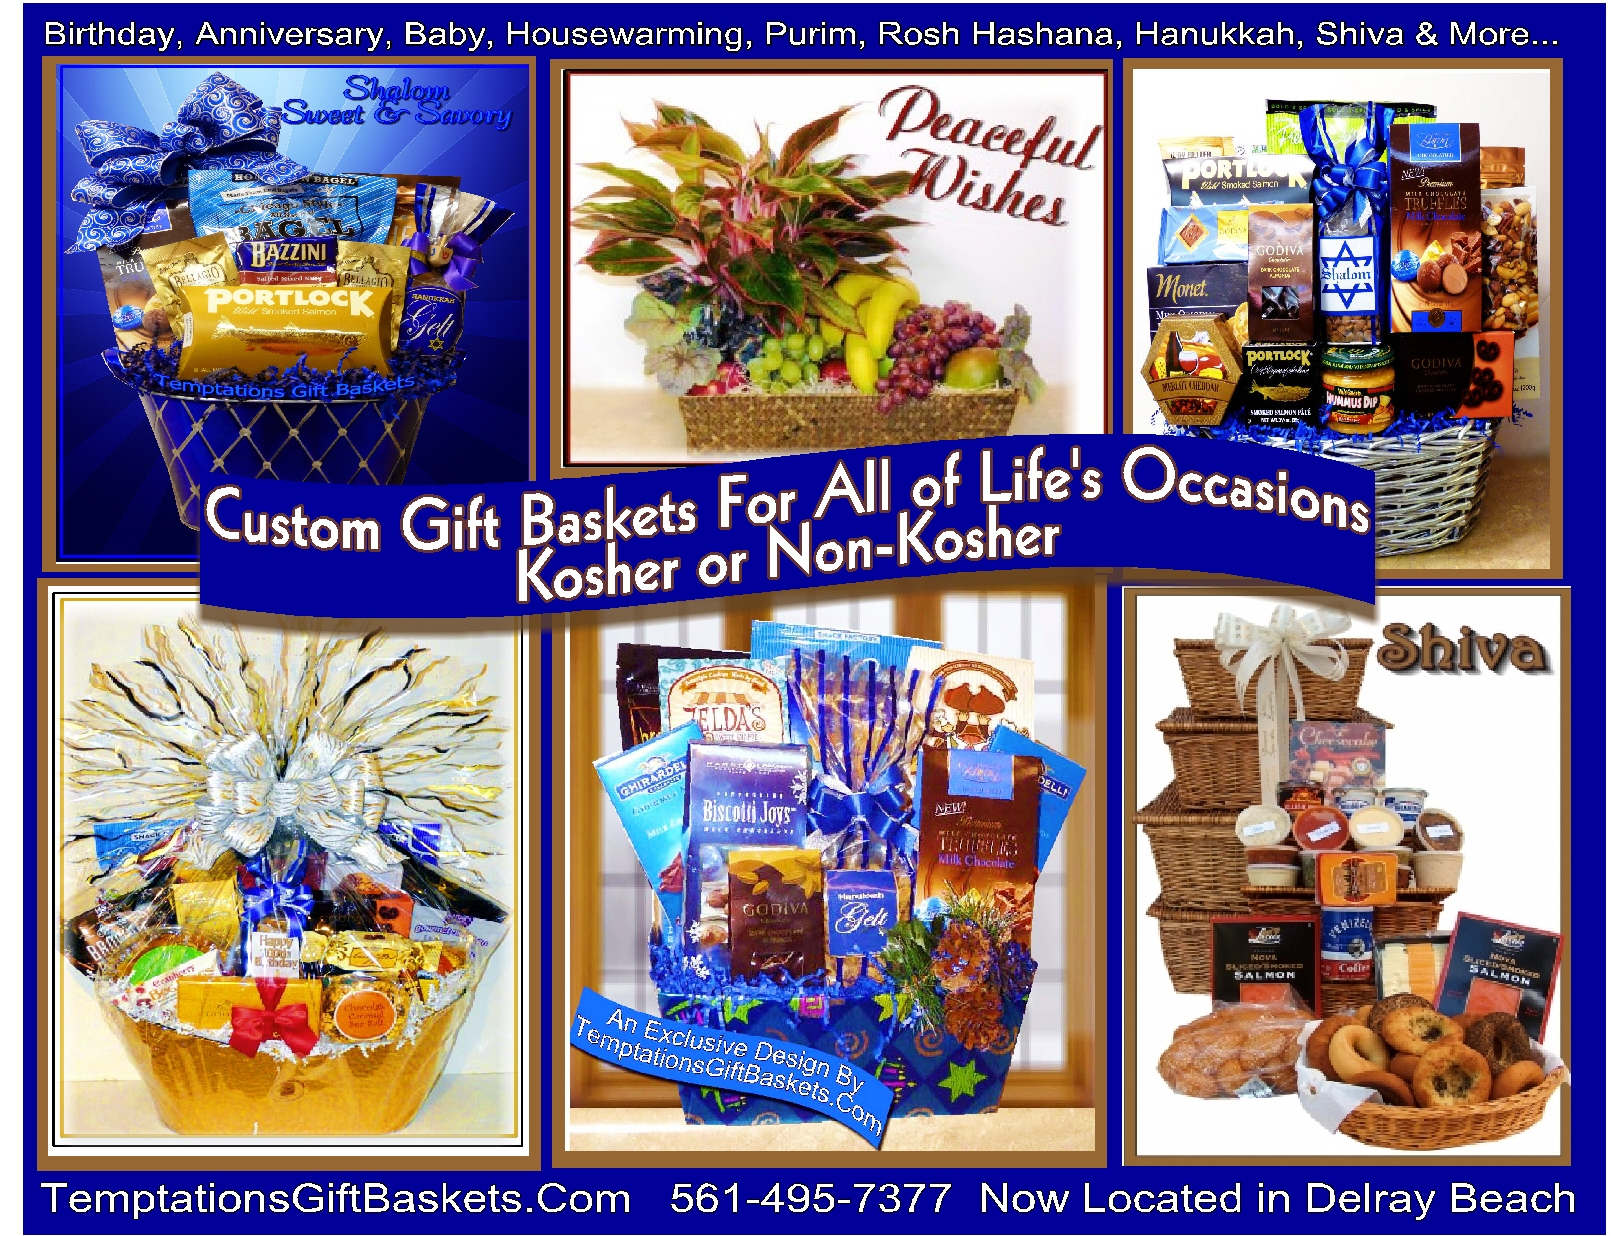 Kosher gourmet gift baskets order online temptations gift days until sunday the 1st of january httptemptationsgiftbasketshanukkah chanukkah kosher gift baskets giftsp temptationsgiftbaskets negle Images